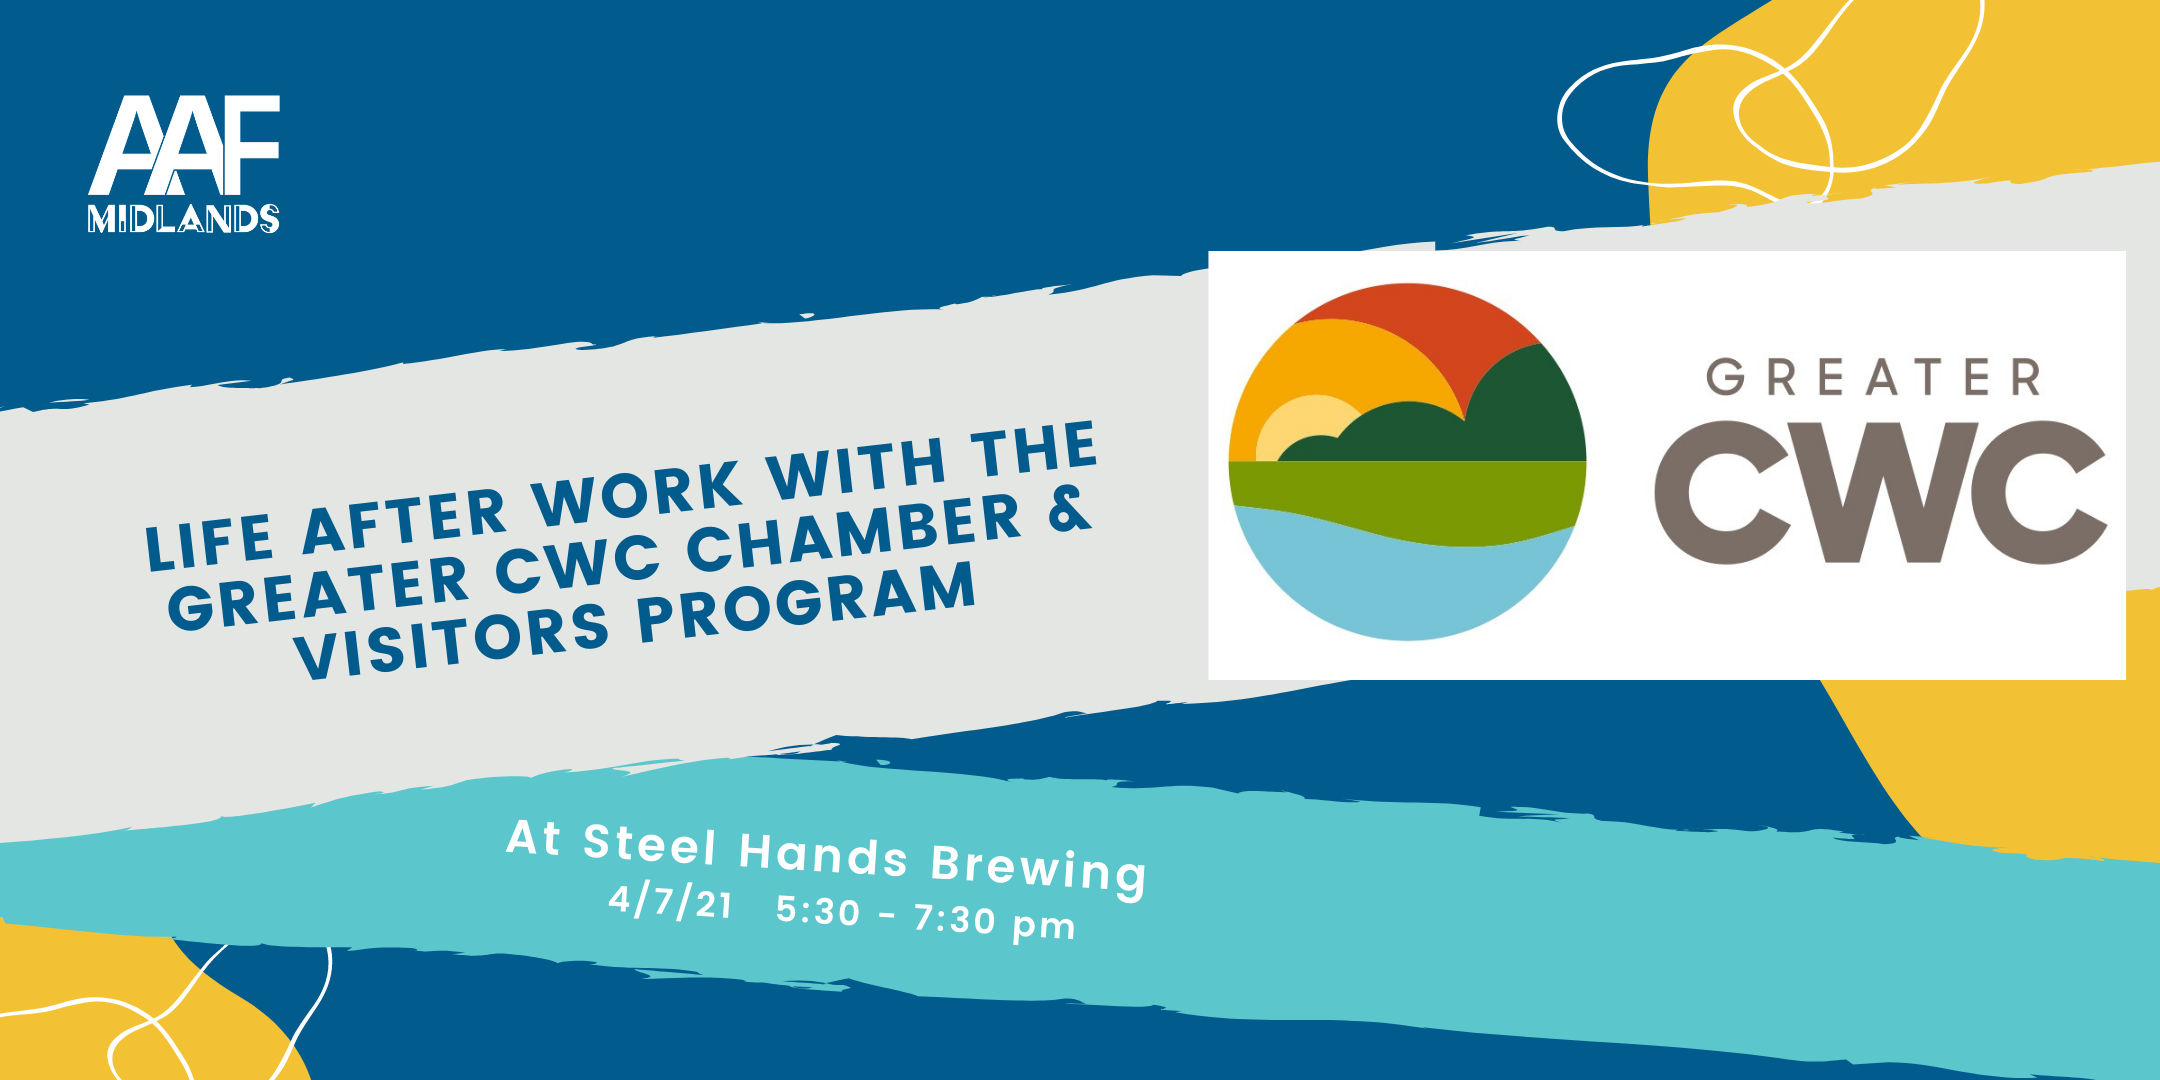 Life After Work with the Greater CWC Chamber & Visitors Program info graphic